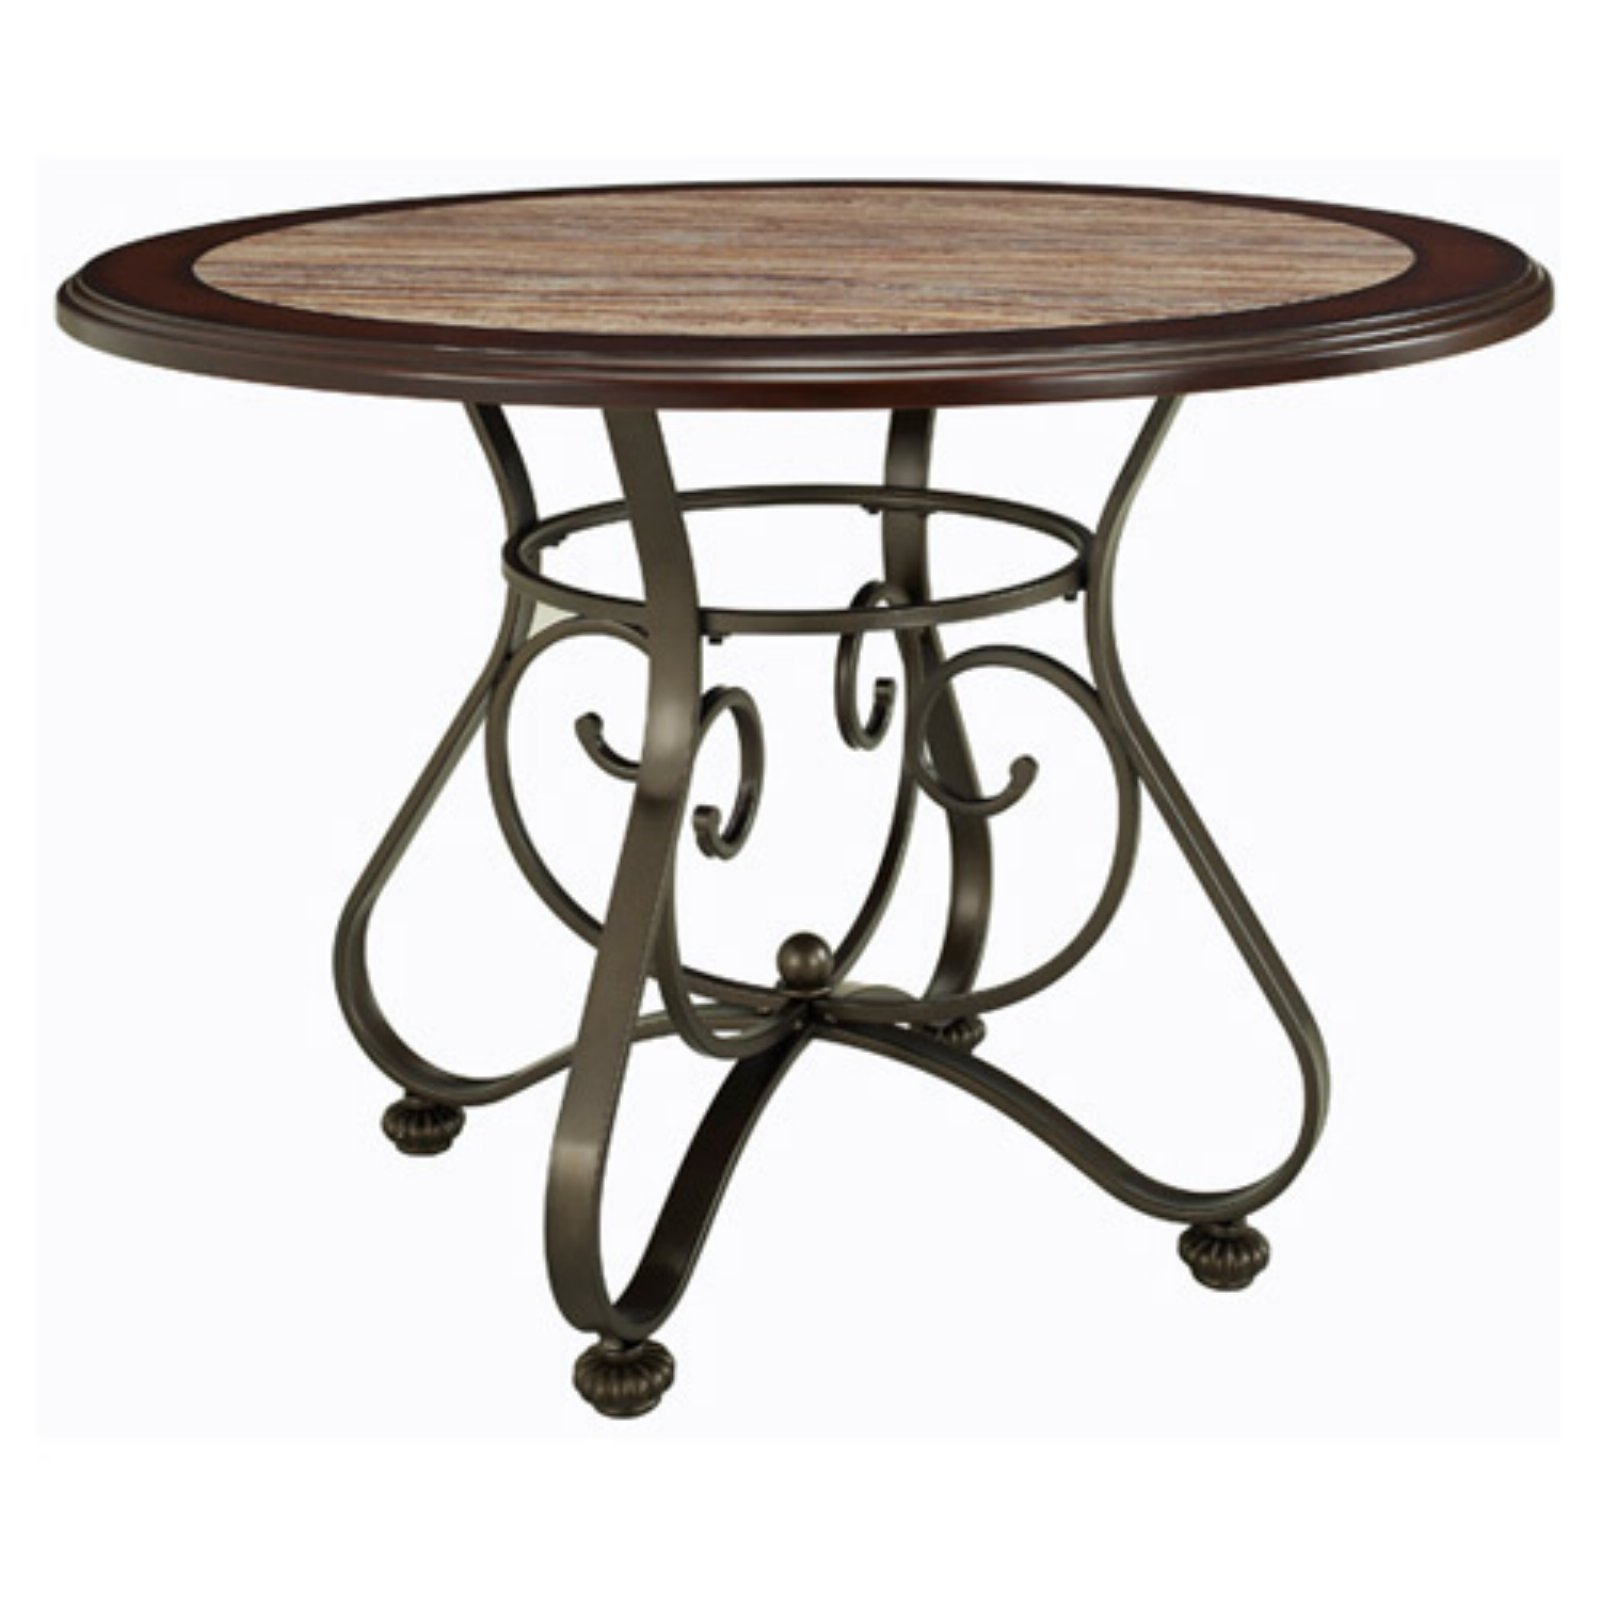 Powell Whitman Round Dining Table - Bronze